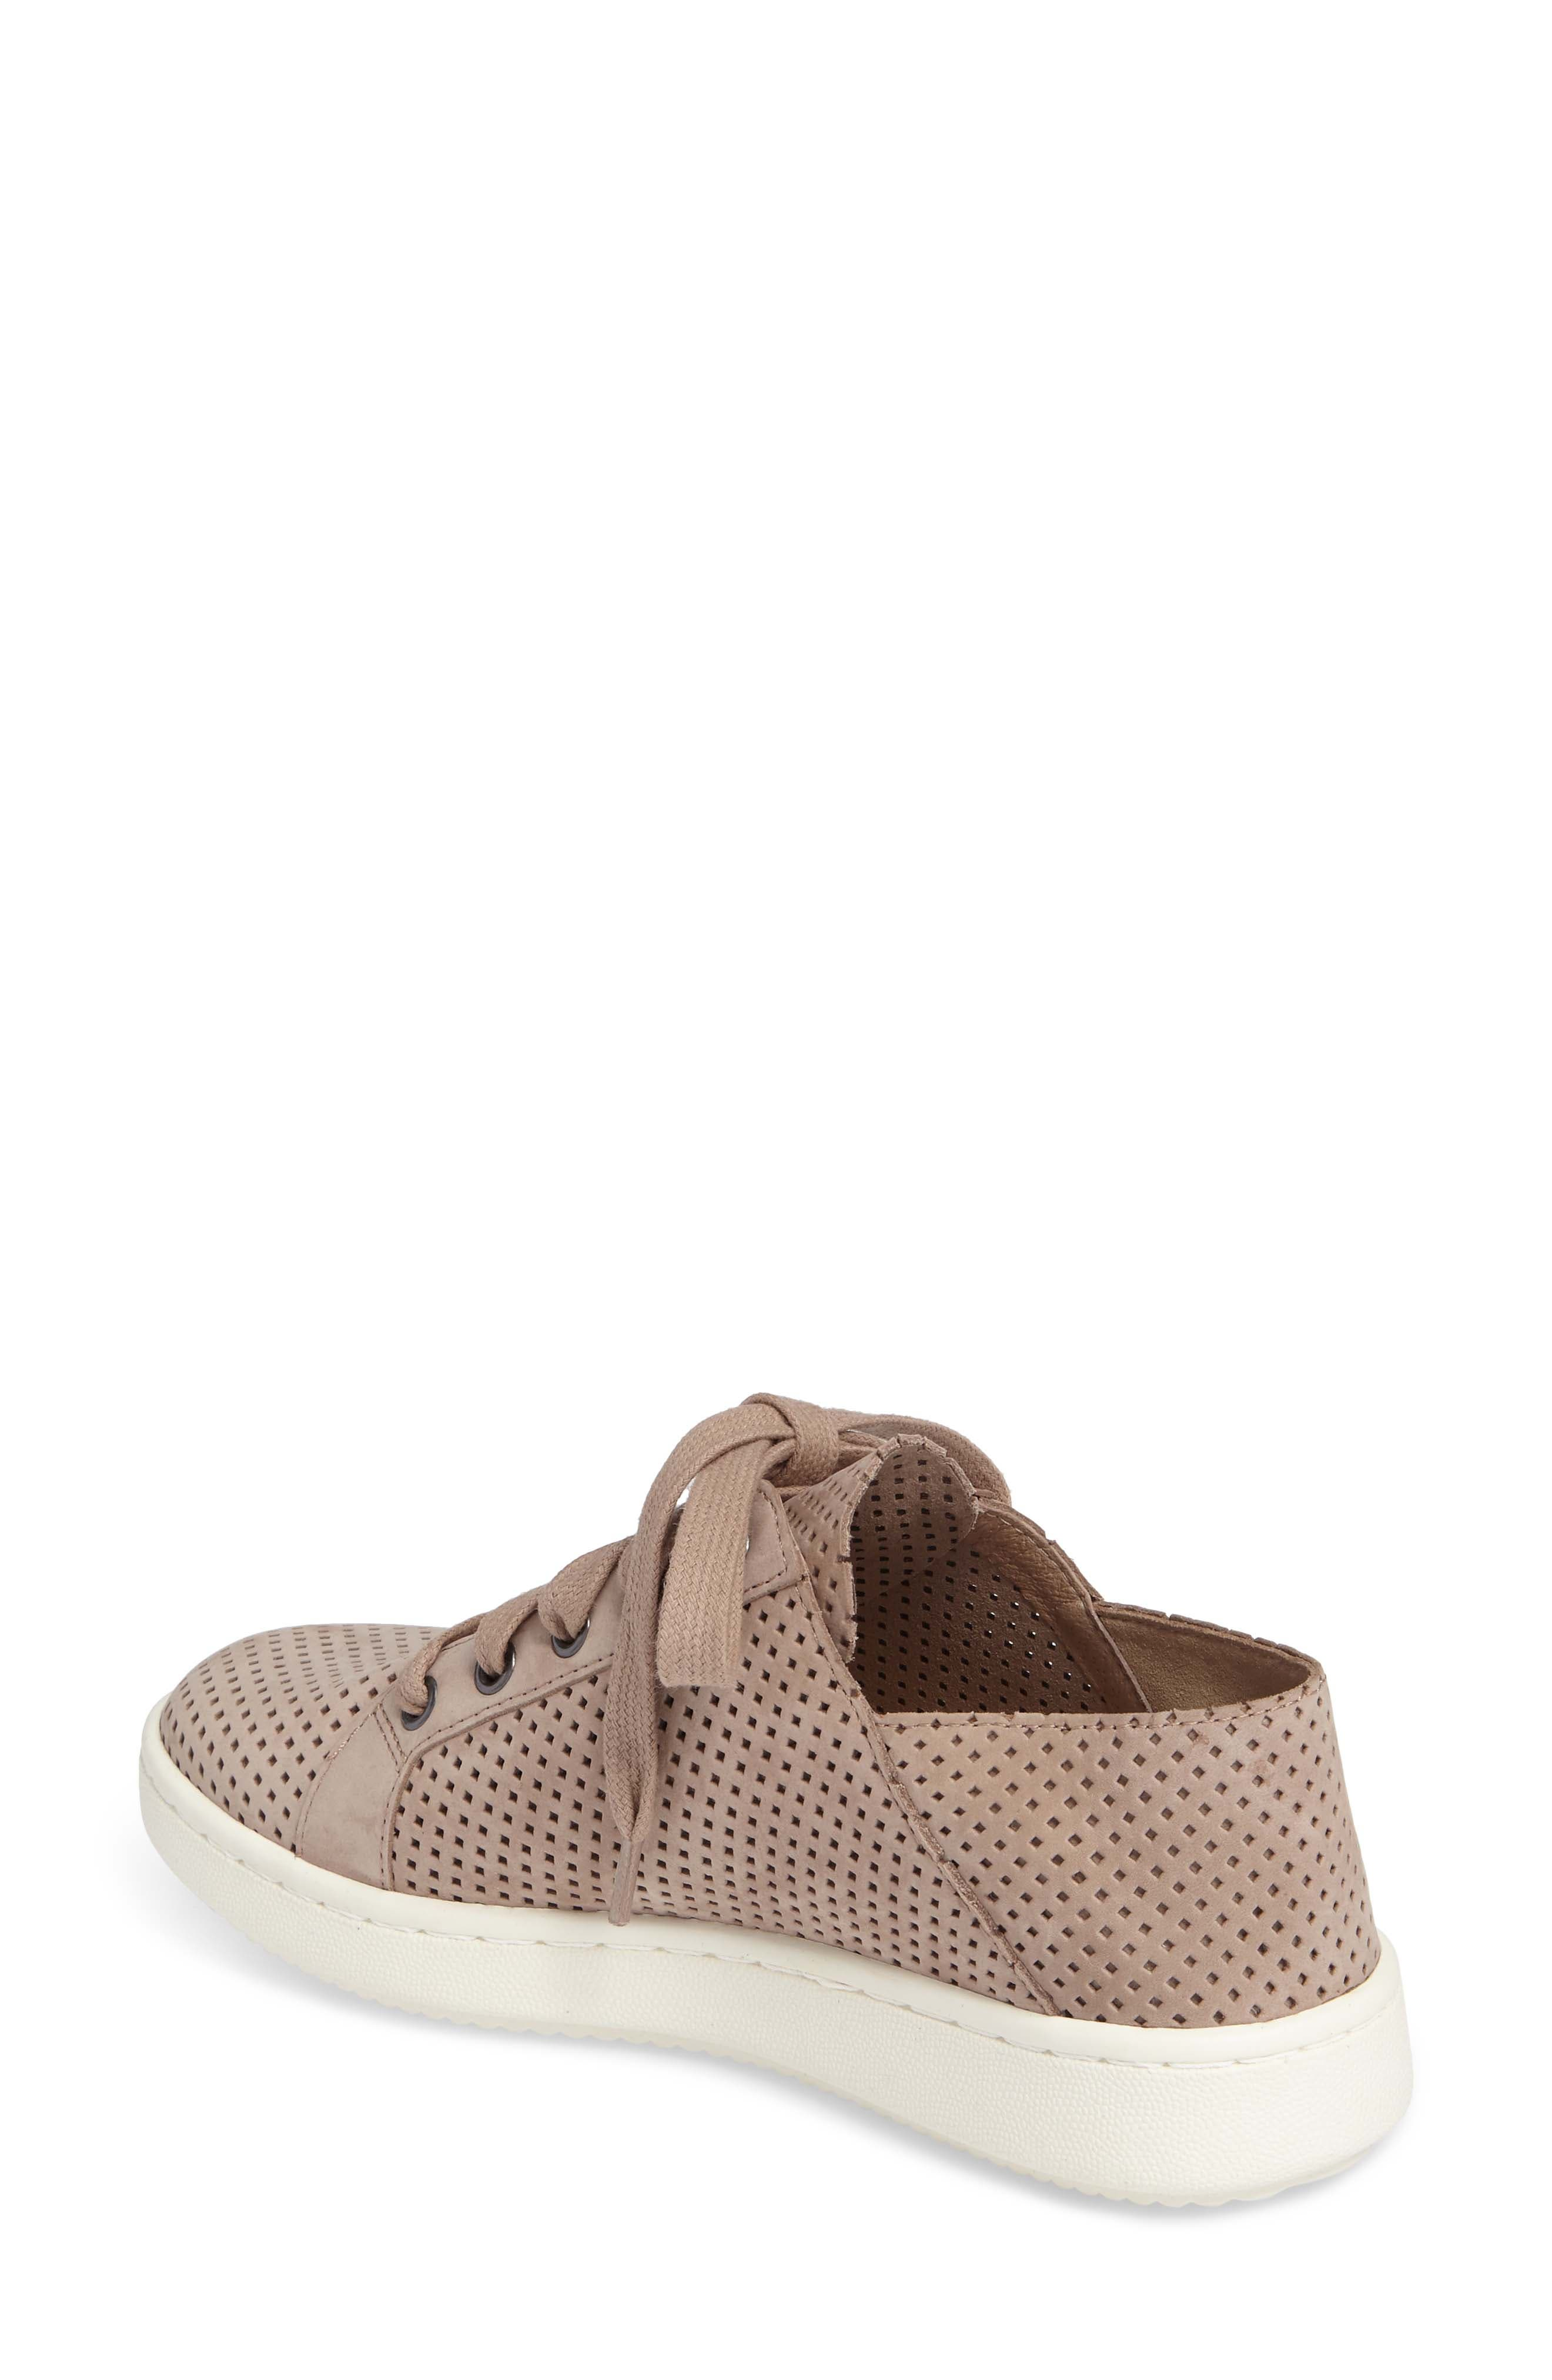 Clifton Perforated Sneaker,                             Alternate thumbnail 2, color,                             Earth Perforated Leather